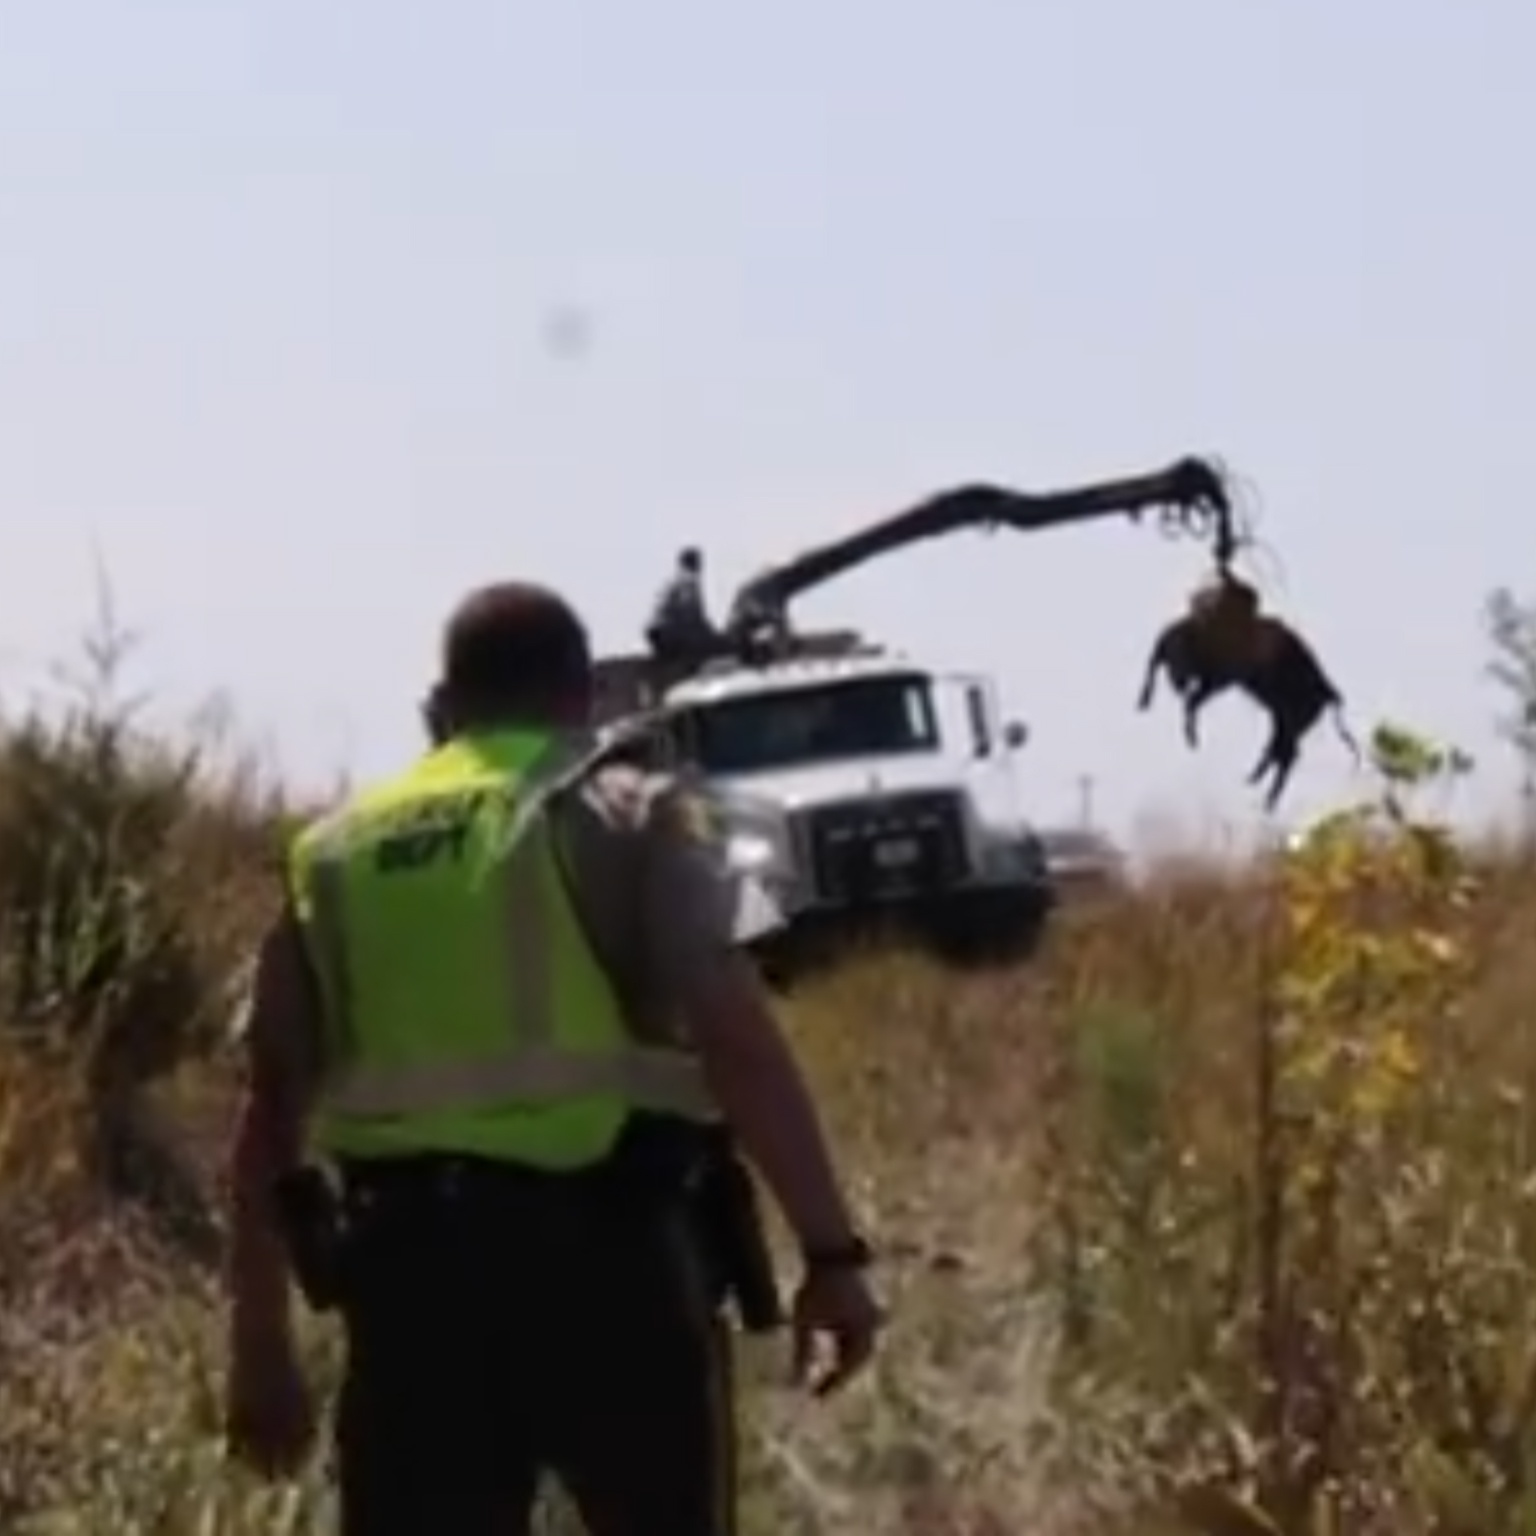 Decease steers are loaded into a dump truck after  The Liber8ed  accident.